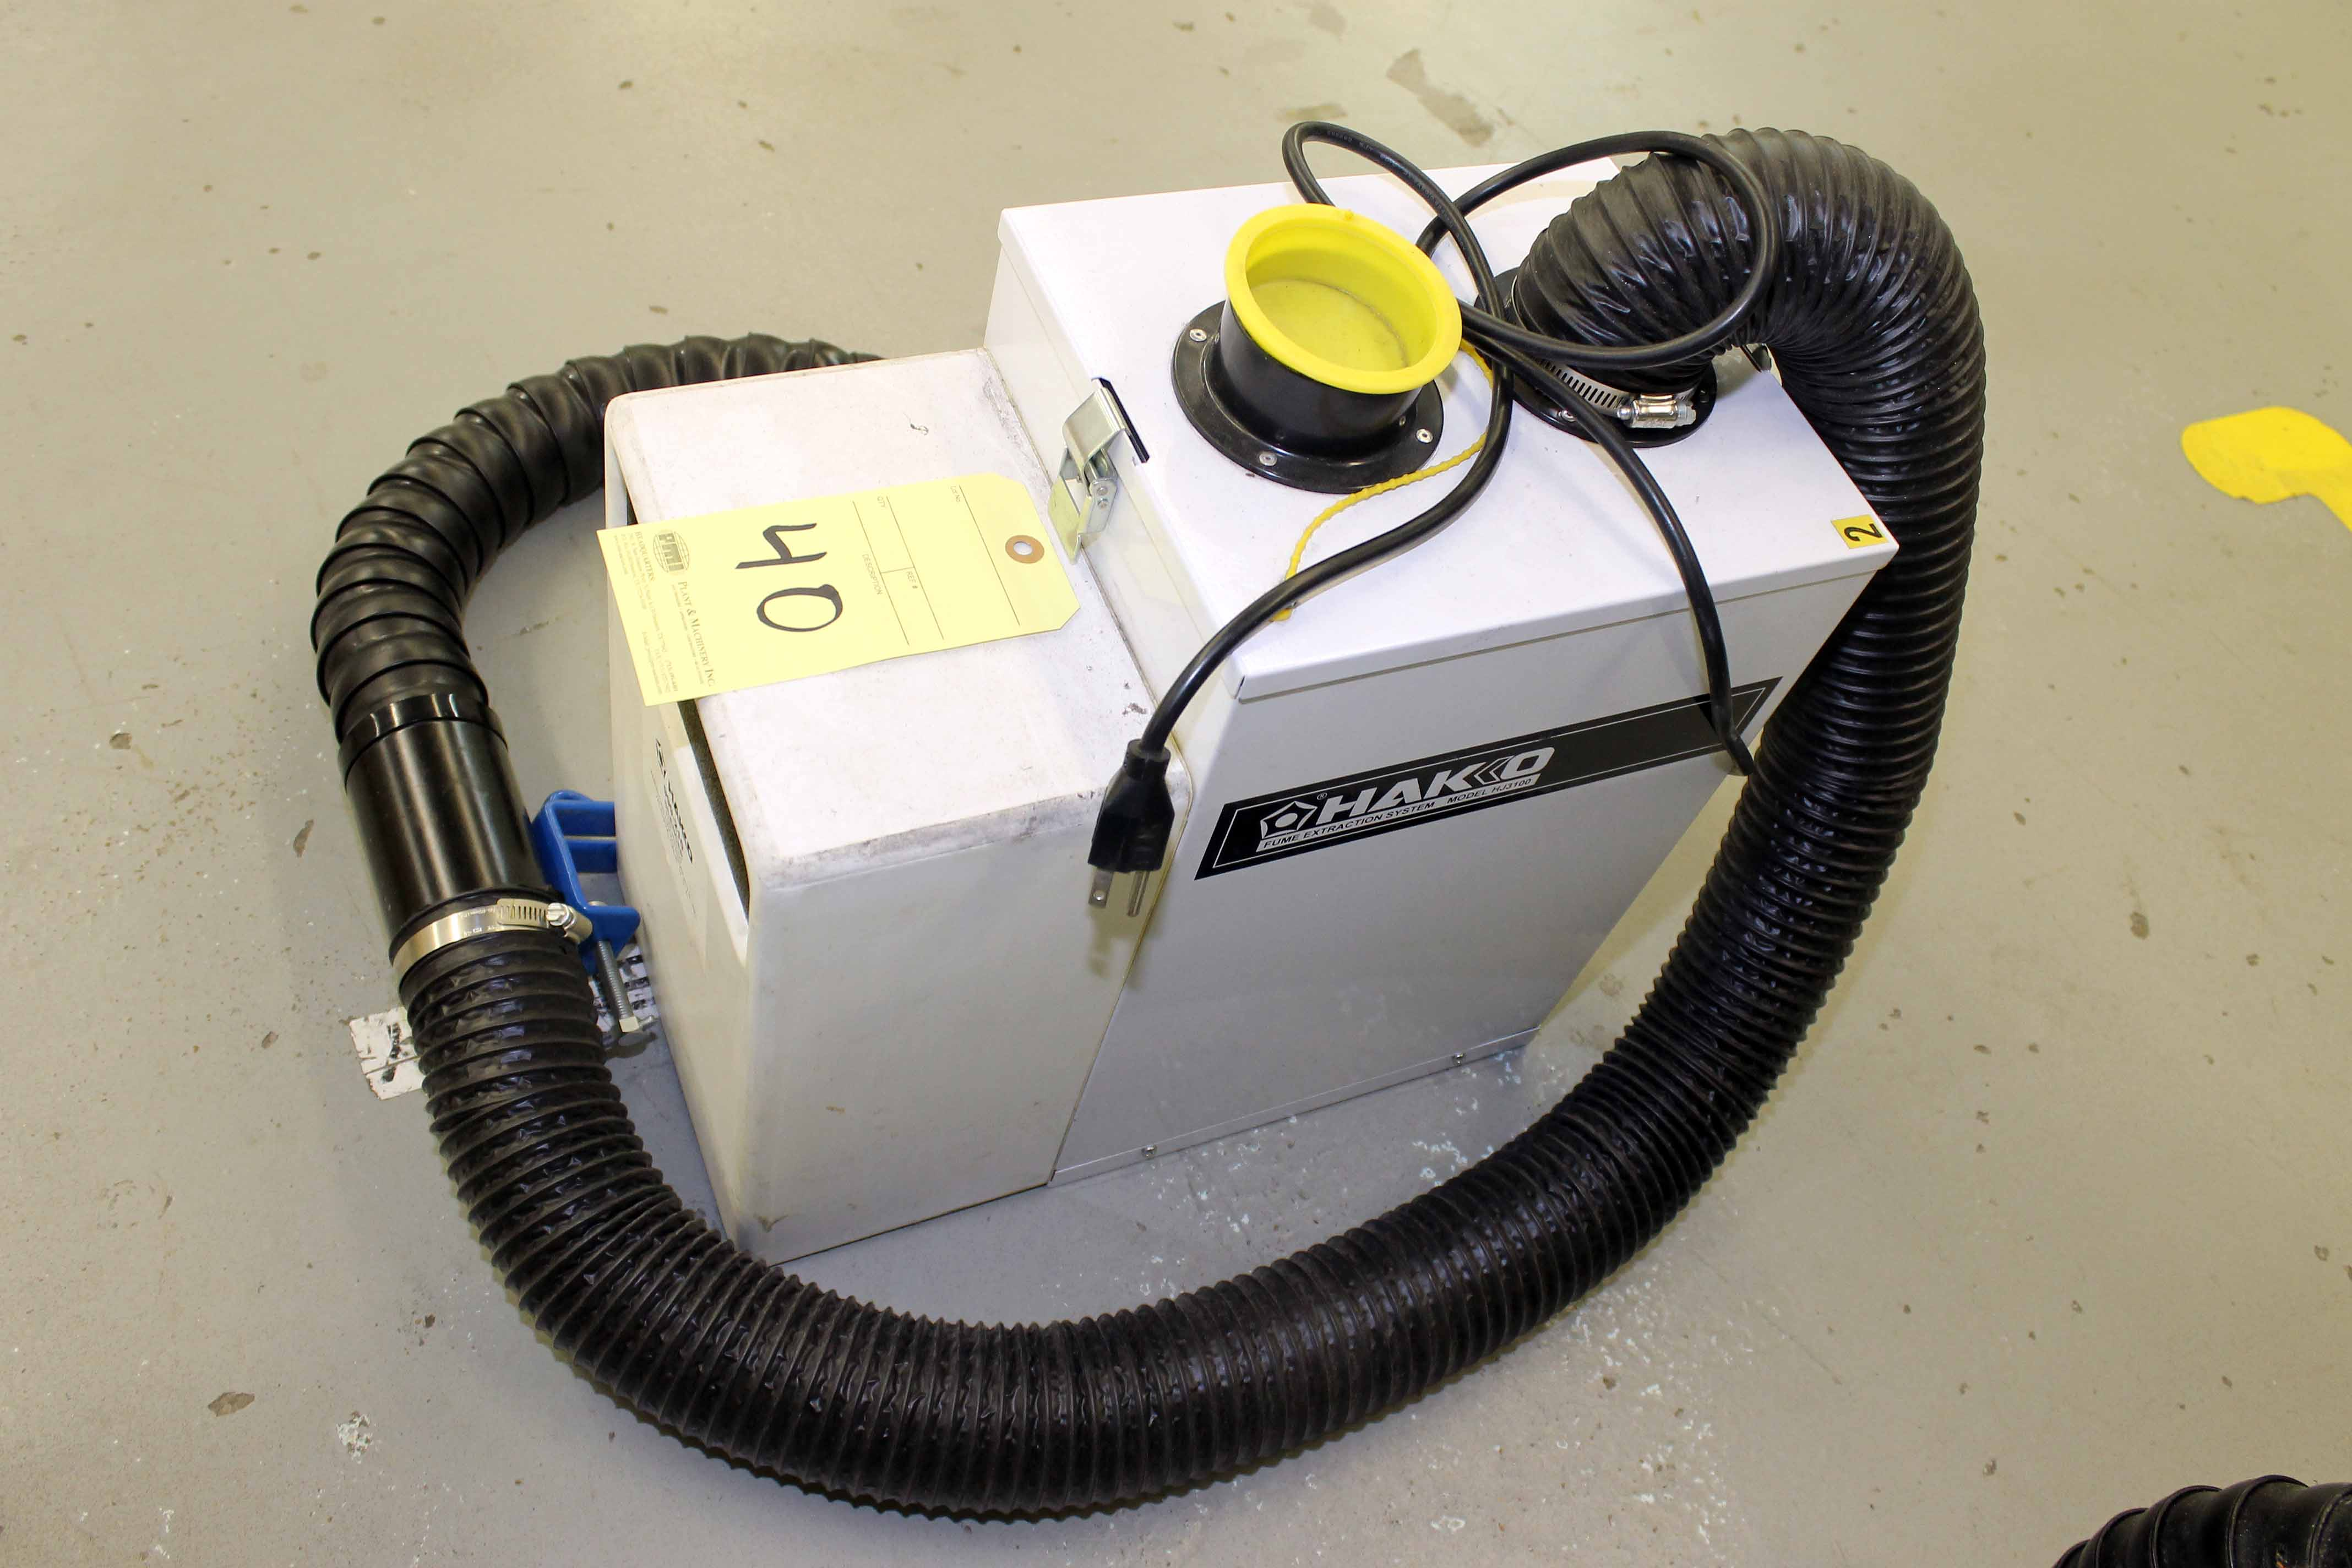 Lot 40 - FUME EXTRACTOR, HAKO MDL. HJ3100 (Location 2 - Fallstone A)